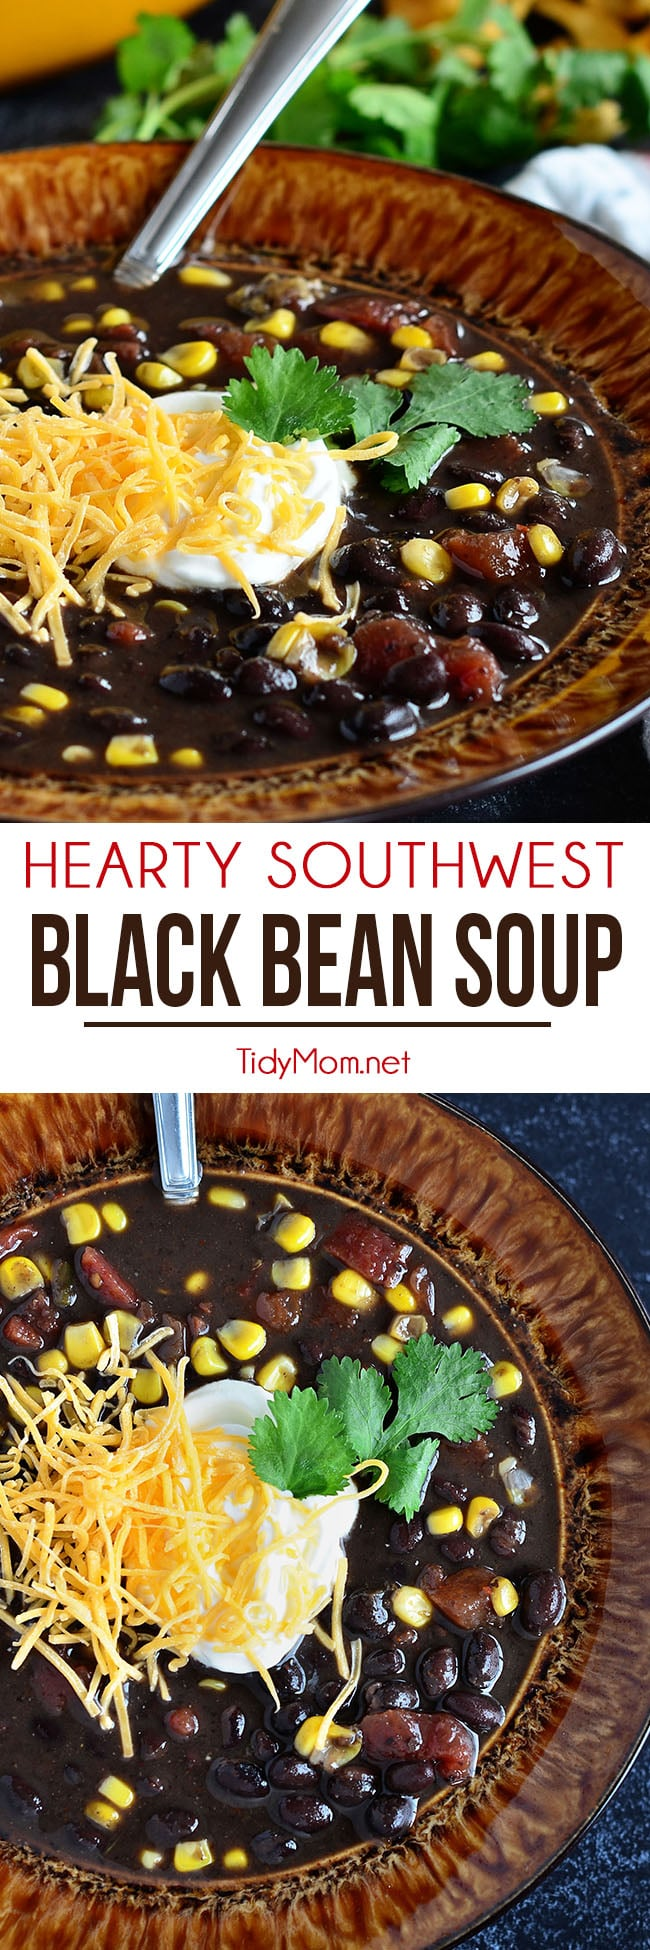 This Hearty Southwest Black Bean Soup is full of flavor, you'll never miss the meat! Ready for the table in 30 minutes, but it's even better the next day!! Get the easy recipe + watch how-to video at TidyMom.net #soup #recipe #video #beans #dinner